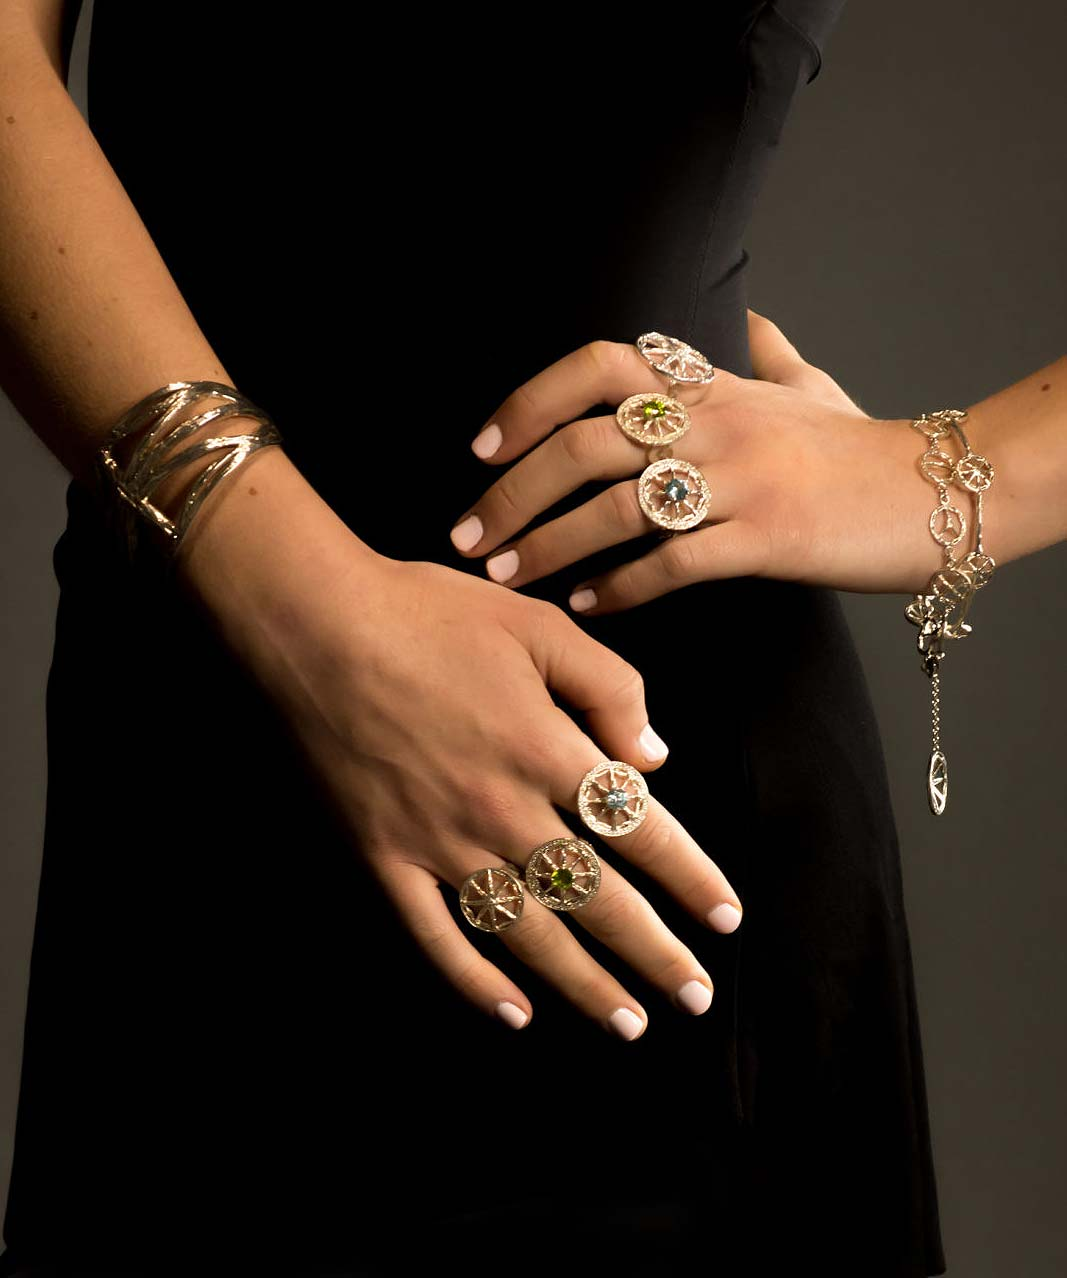 Stone Symbol Jewelry Bracelets, Bangles and Cuffs for Women